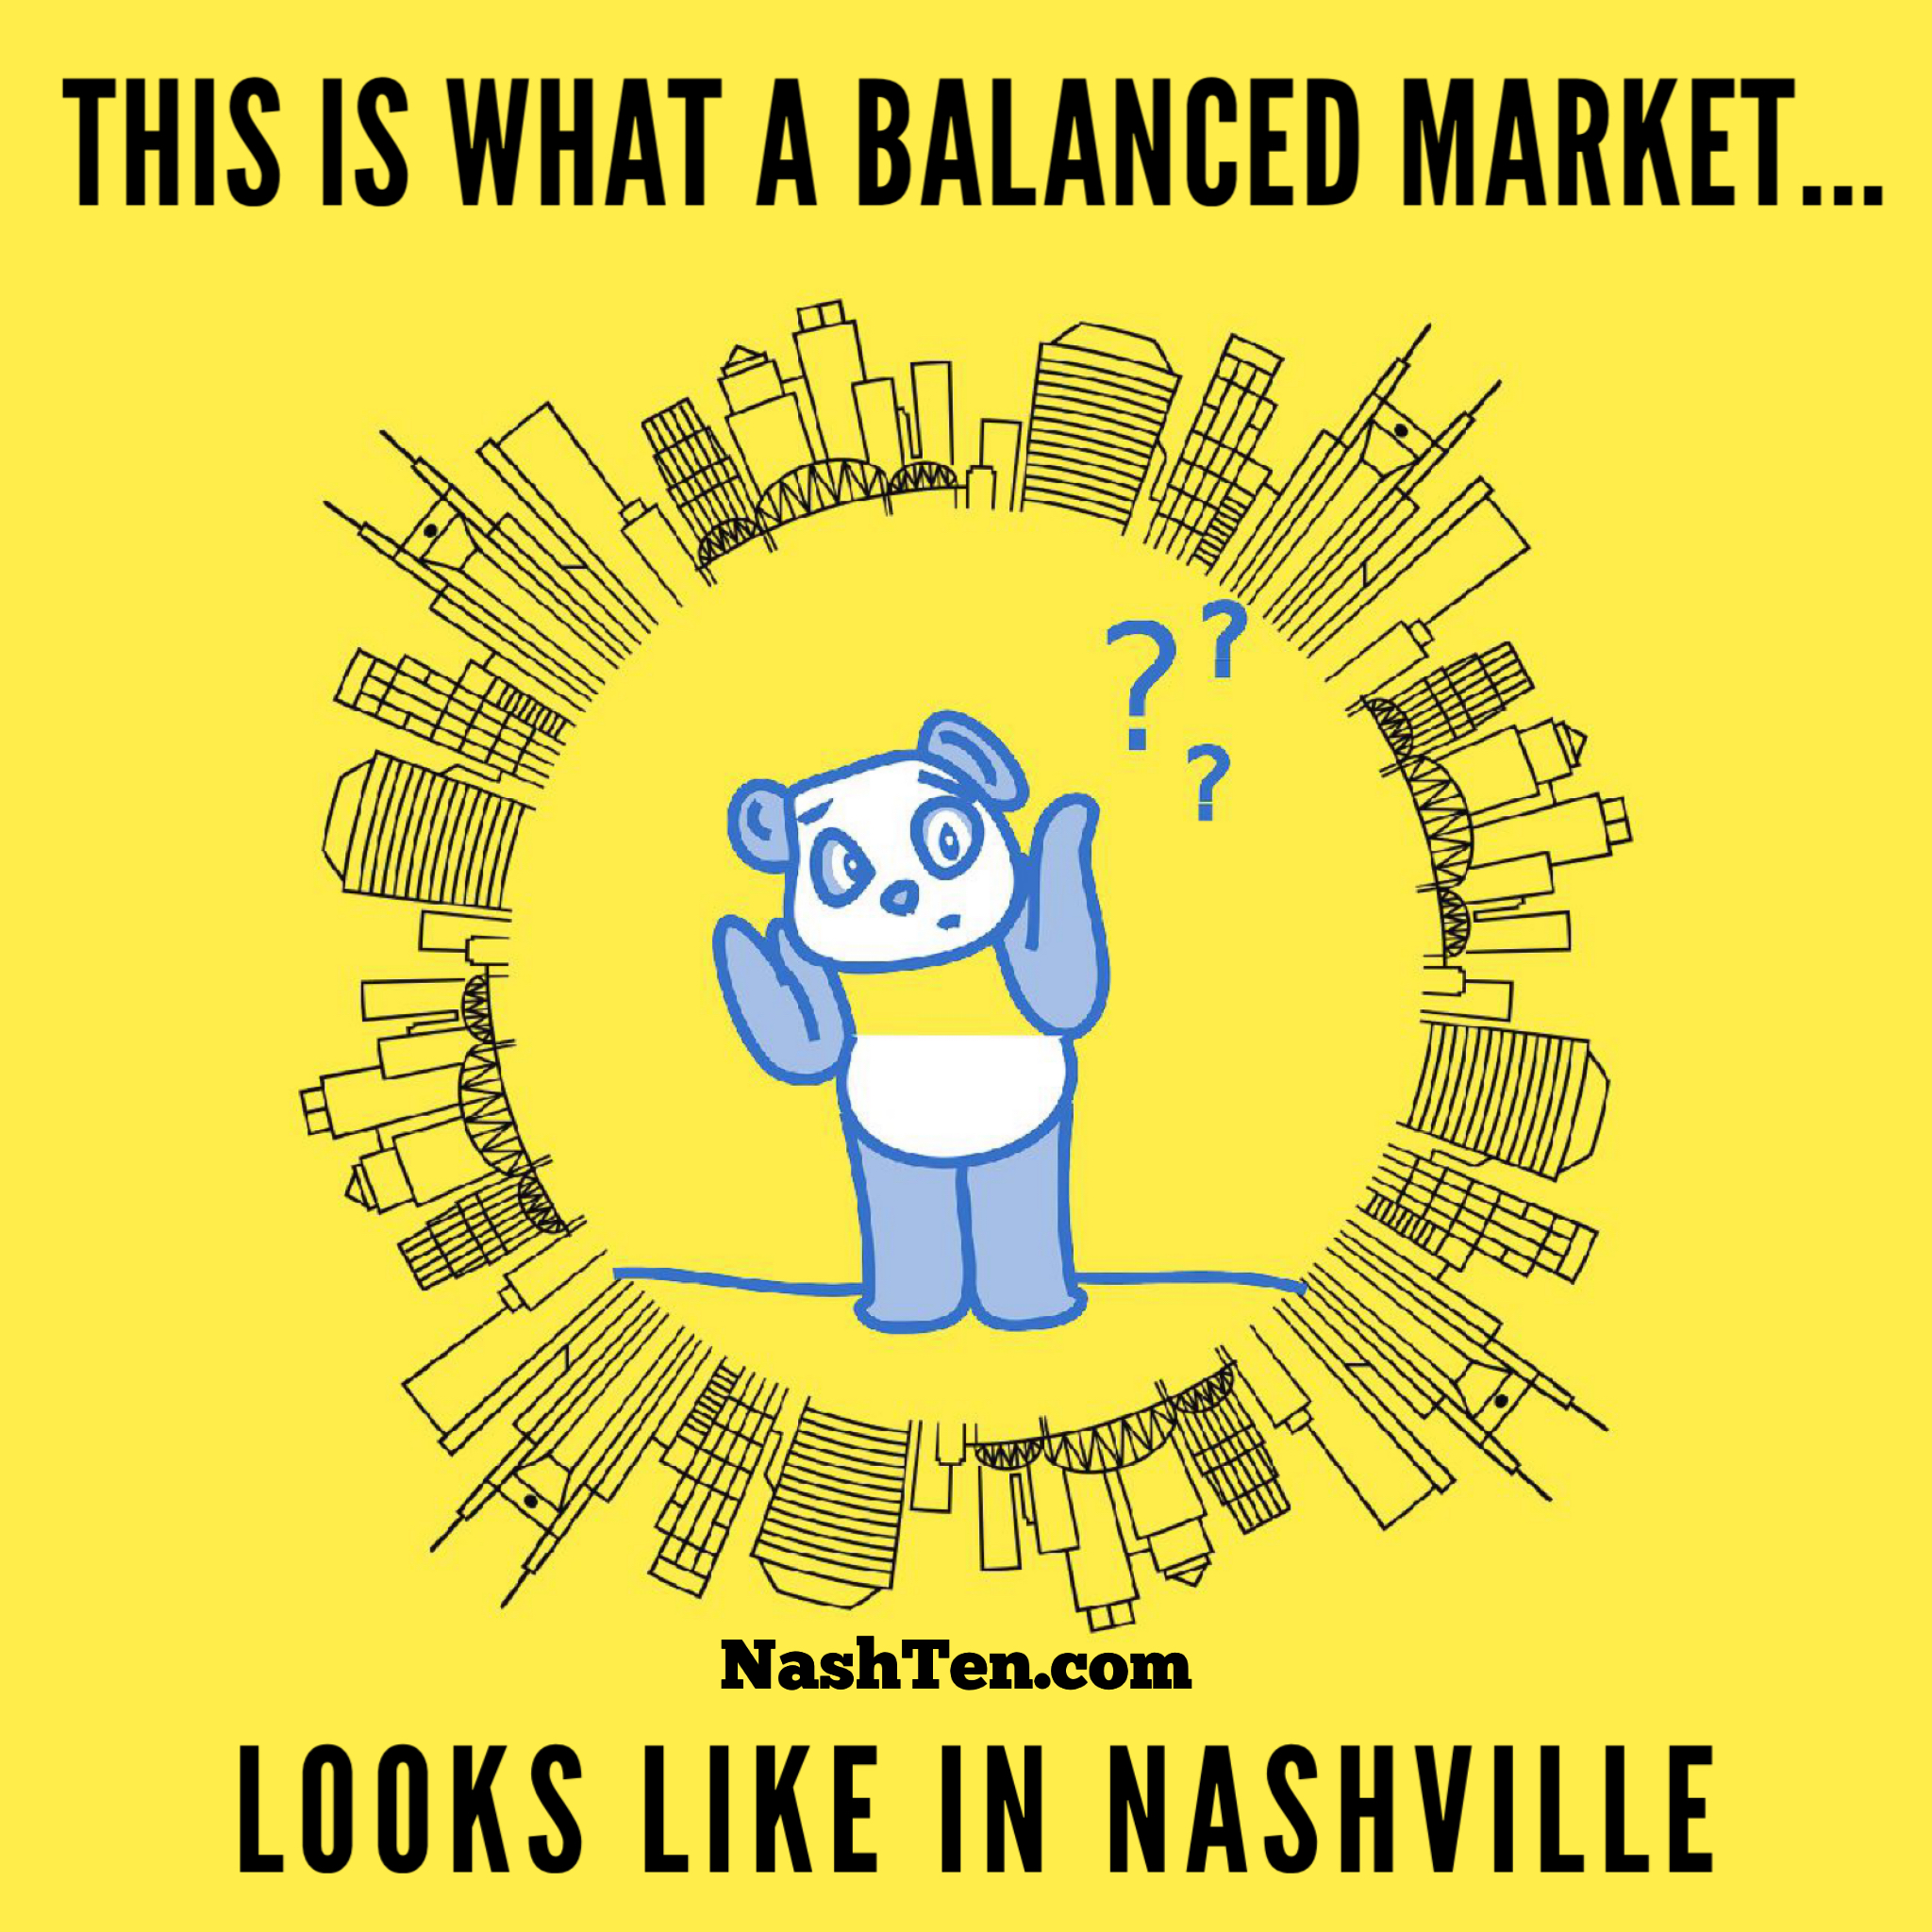 This is what a balanced market looks like in Nashville